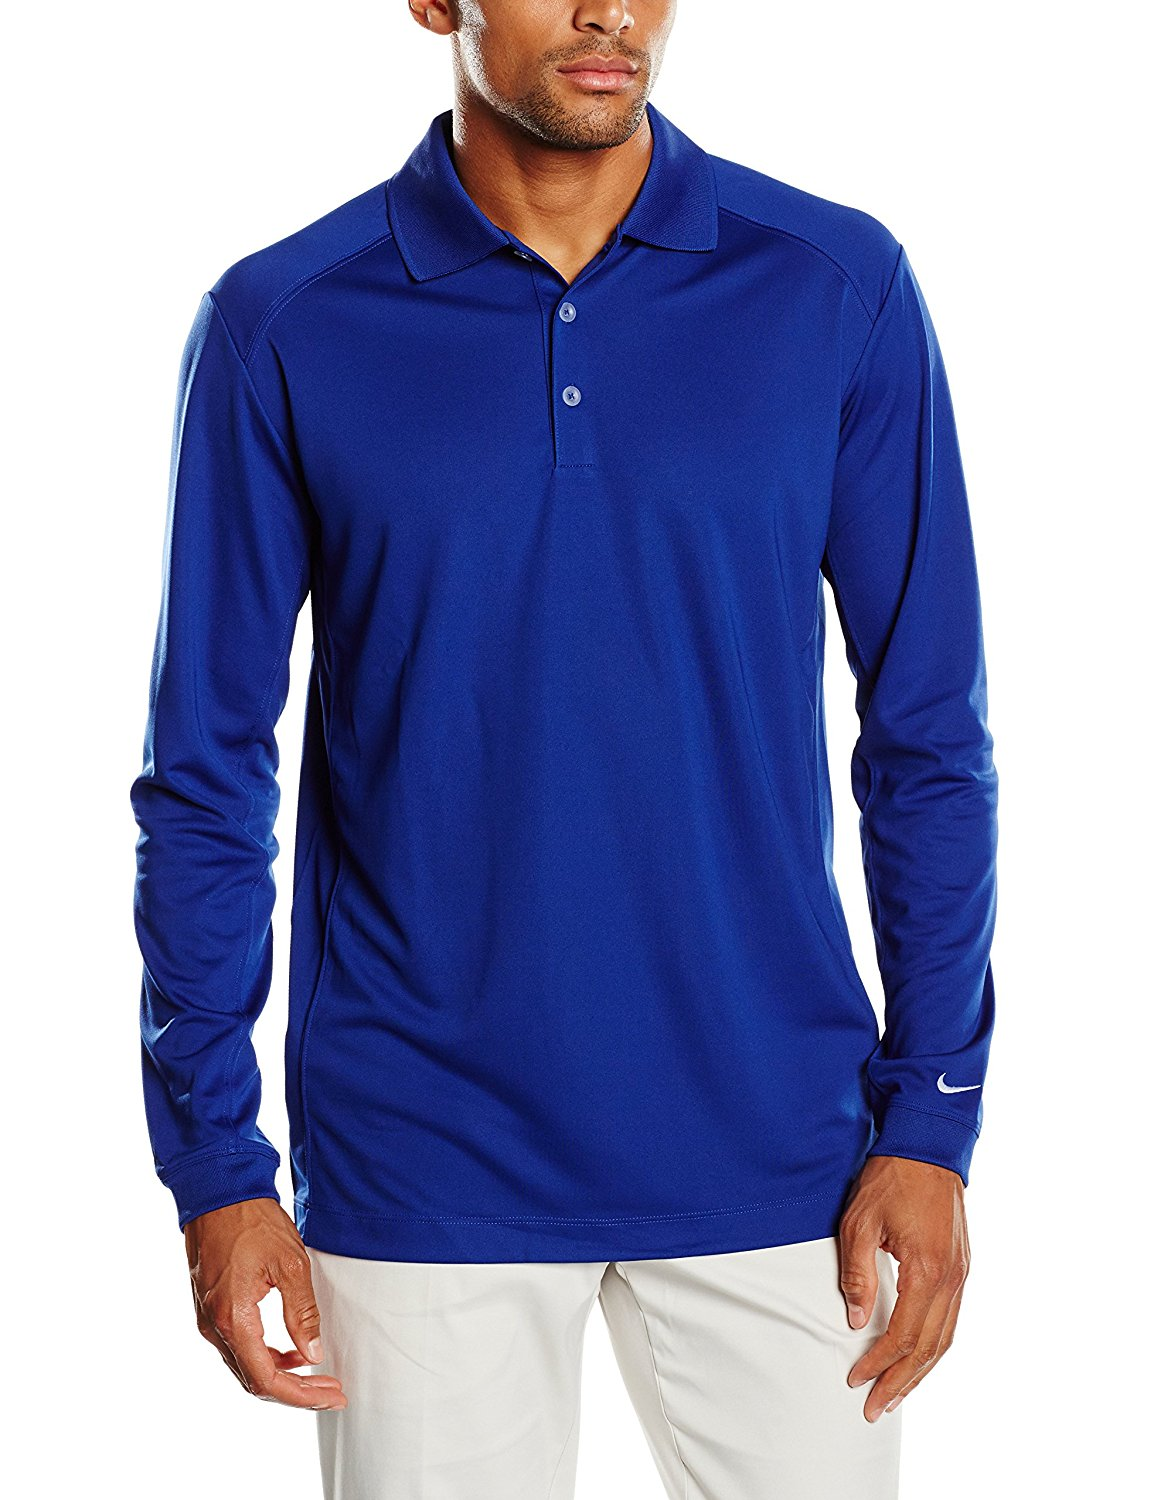 bc0d4bb3e Cheap Dri Fit Long Sleeve Polo, find Dri Fit Long Sleeve Polo deals ...